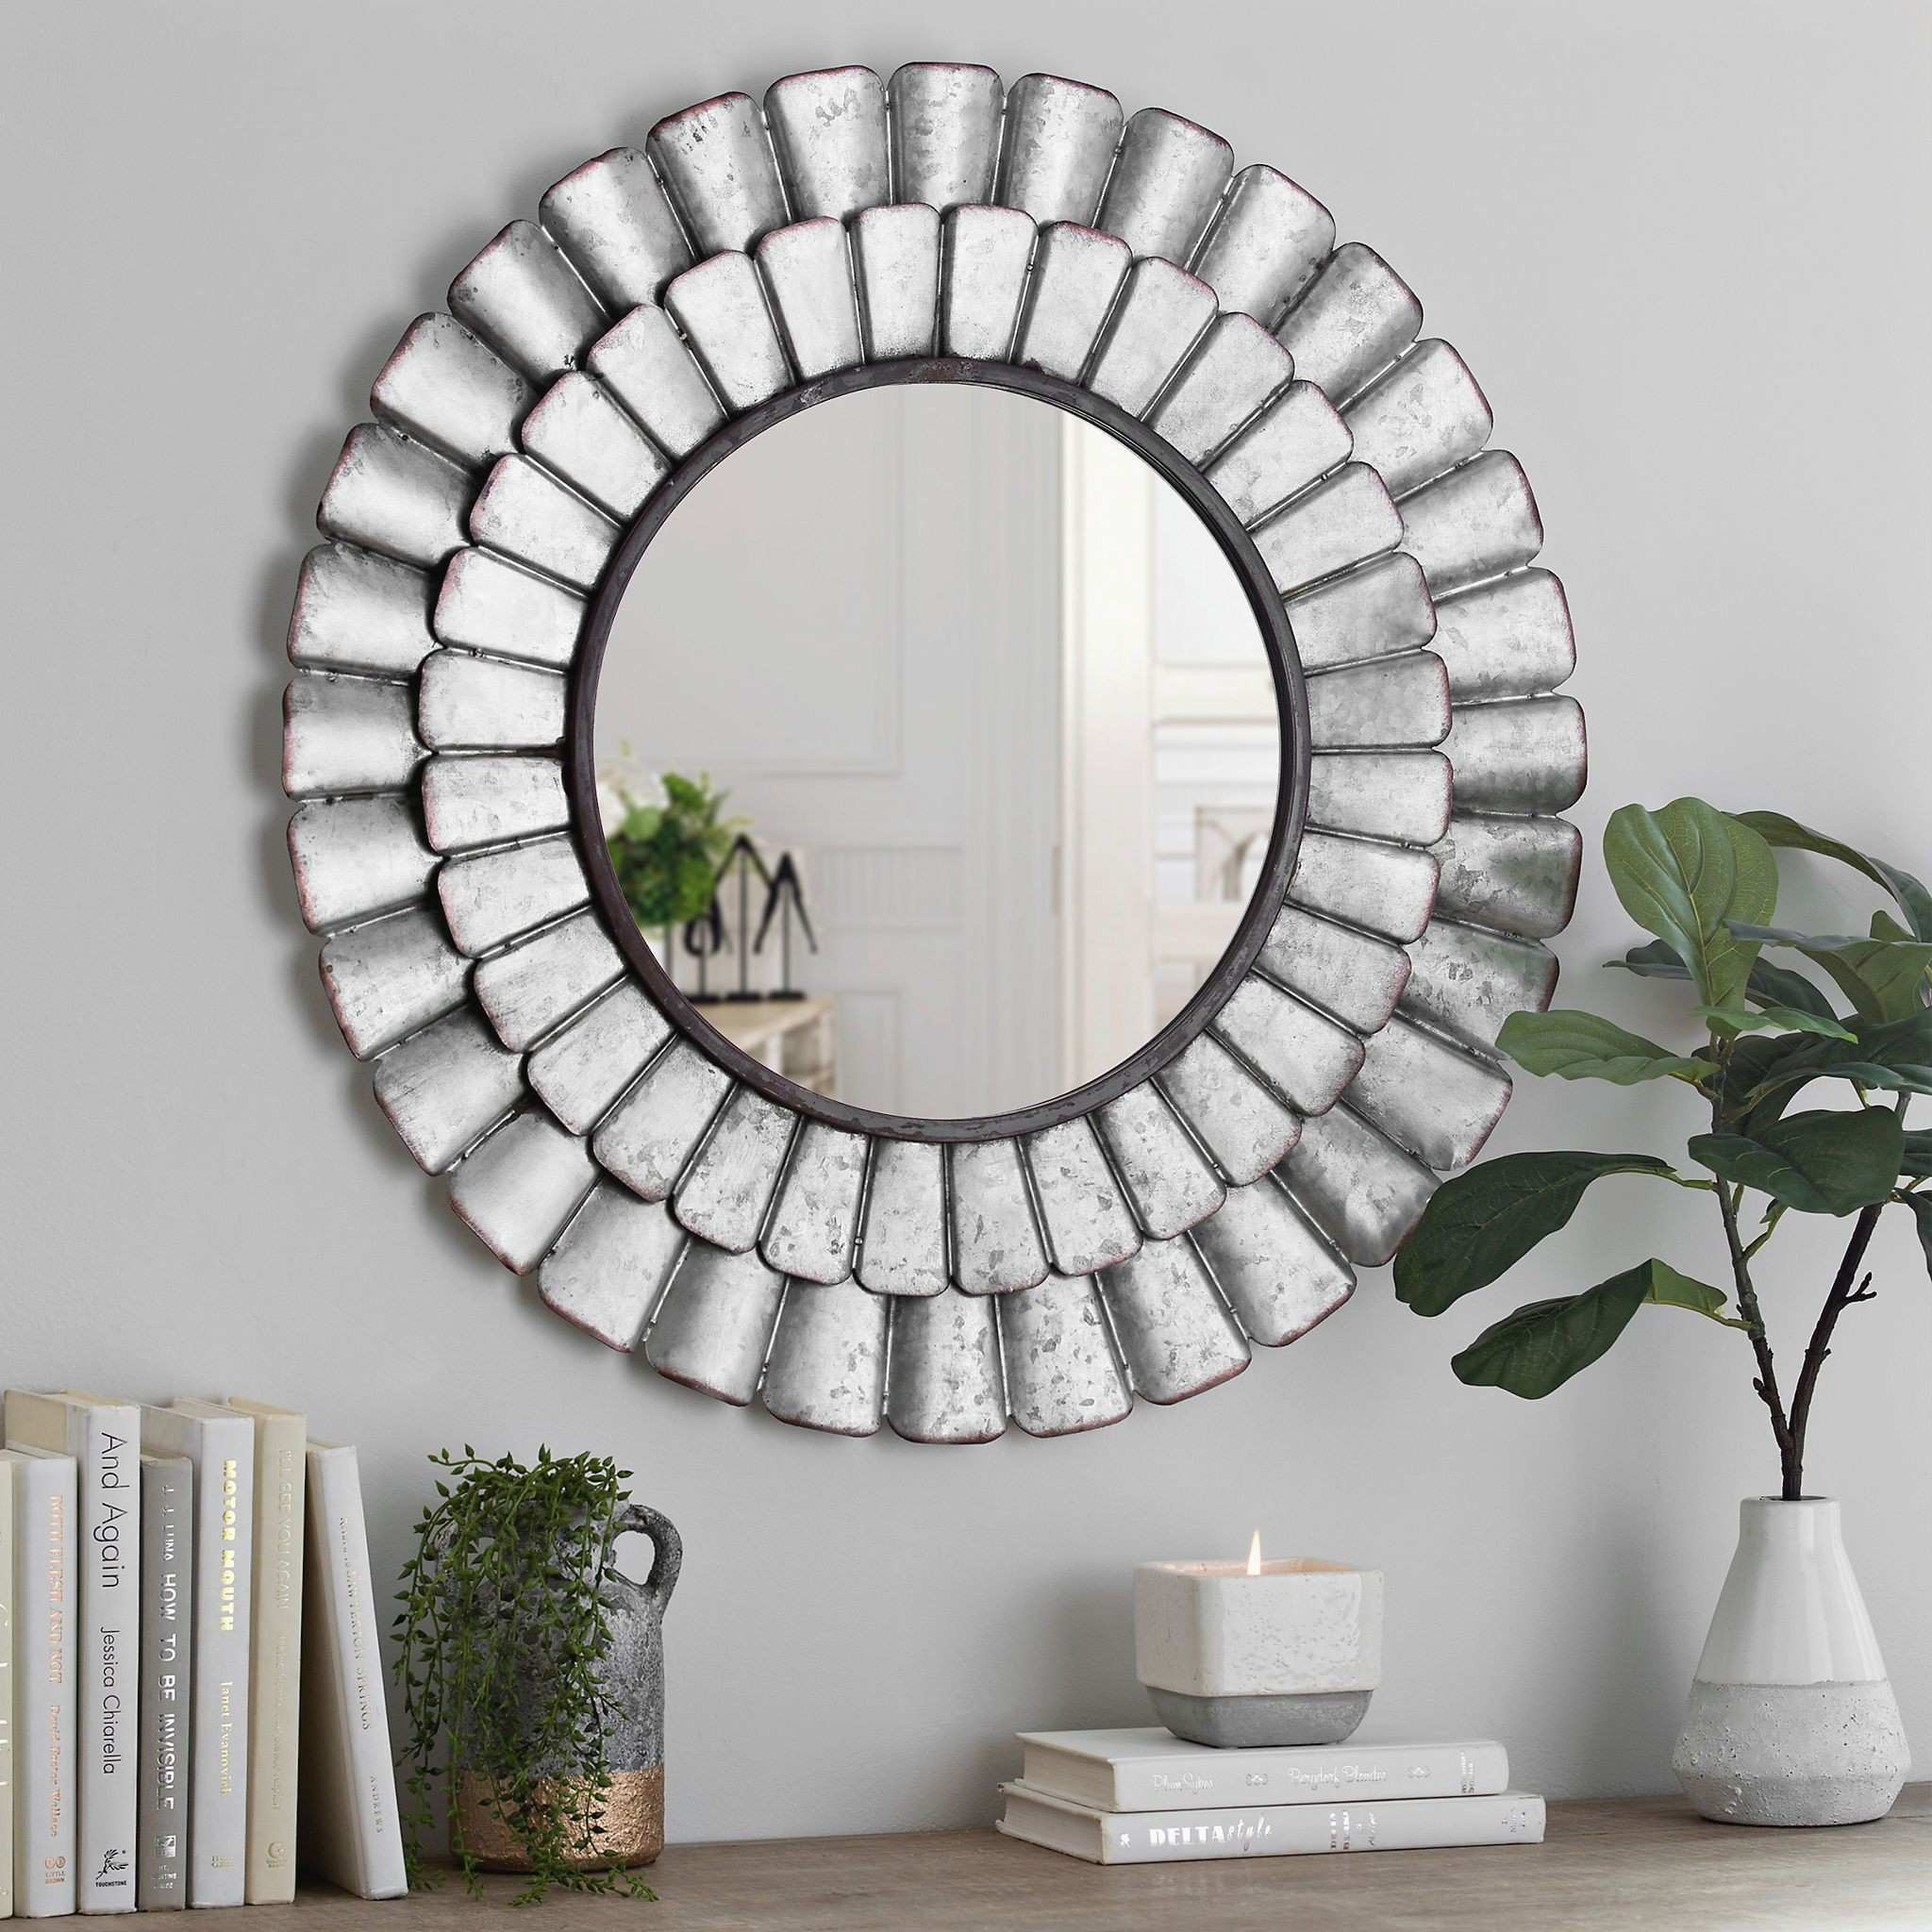 Furniture Jcpenney Mirrors Awesome Galvanized Metal Petal Wall